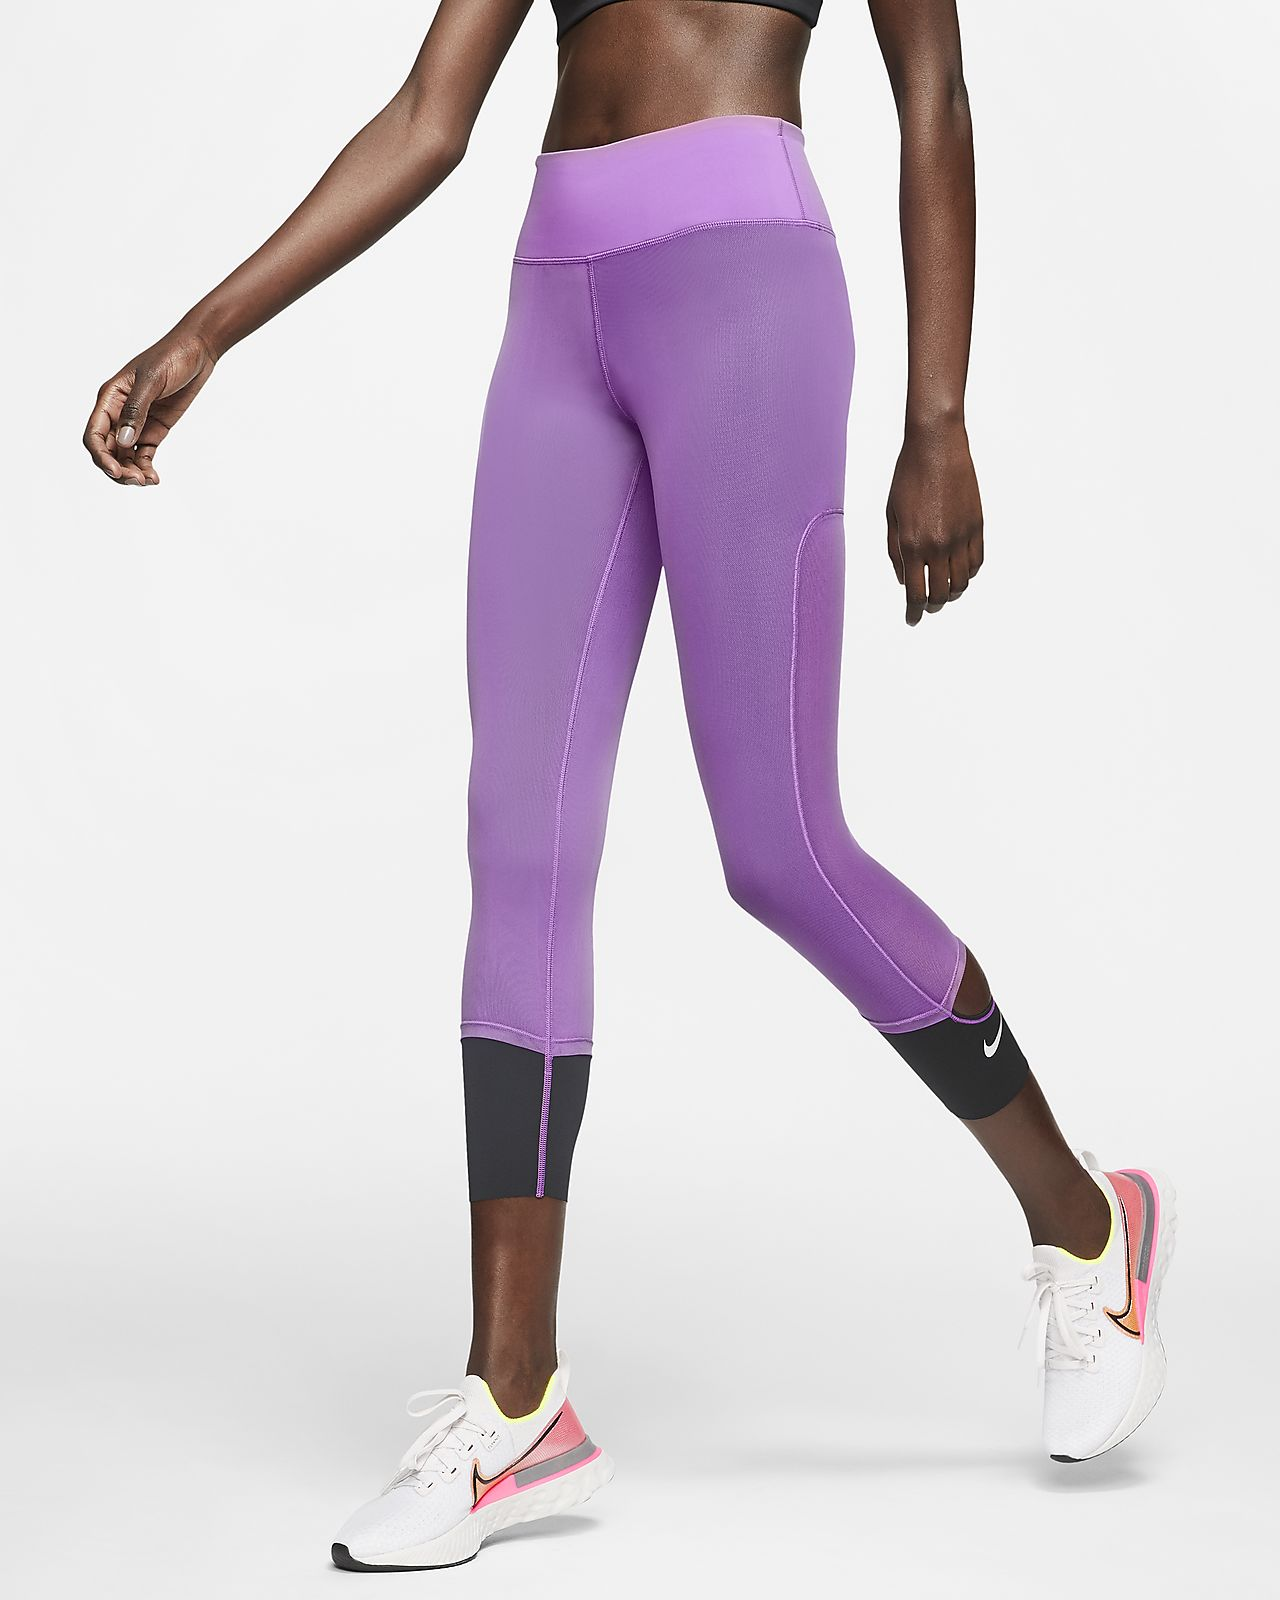 NIKE, Damen Lauftight Epic Lux